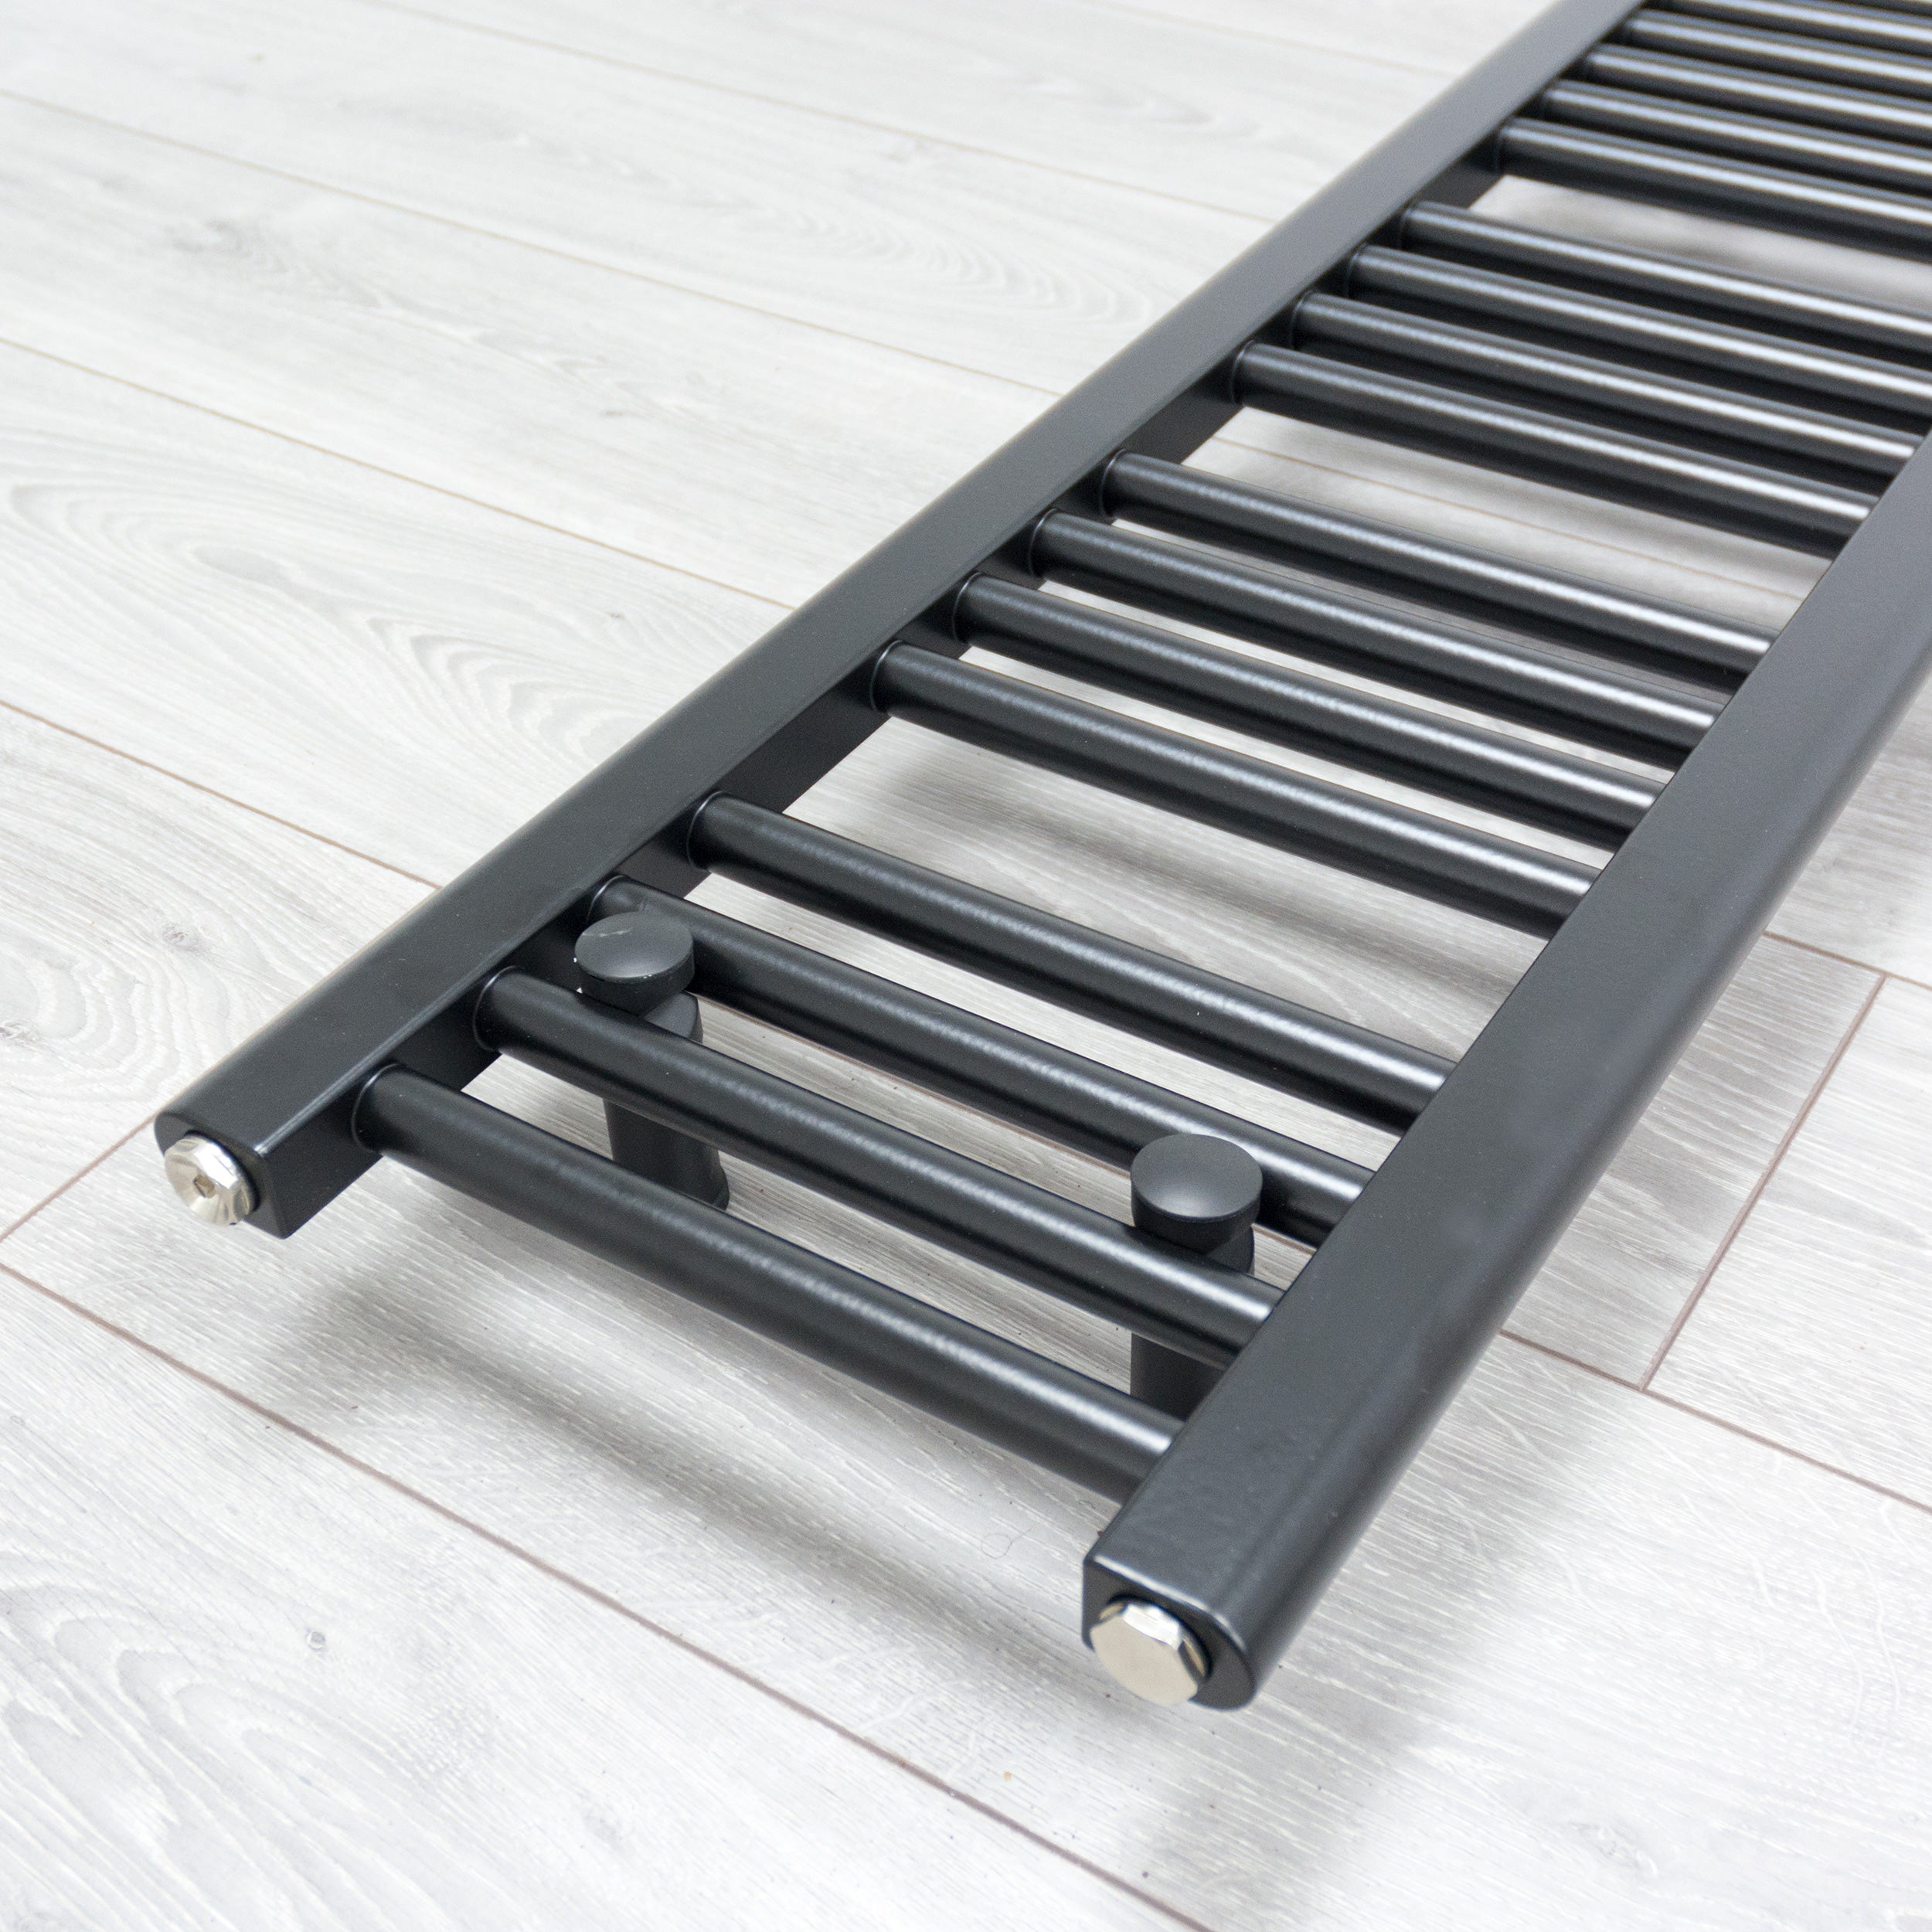 300mm x 1000mm Black Heated Towel Rail Radiator Close Up Image